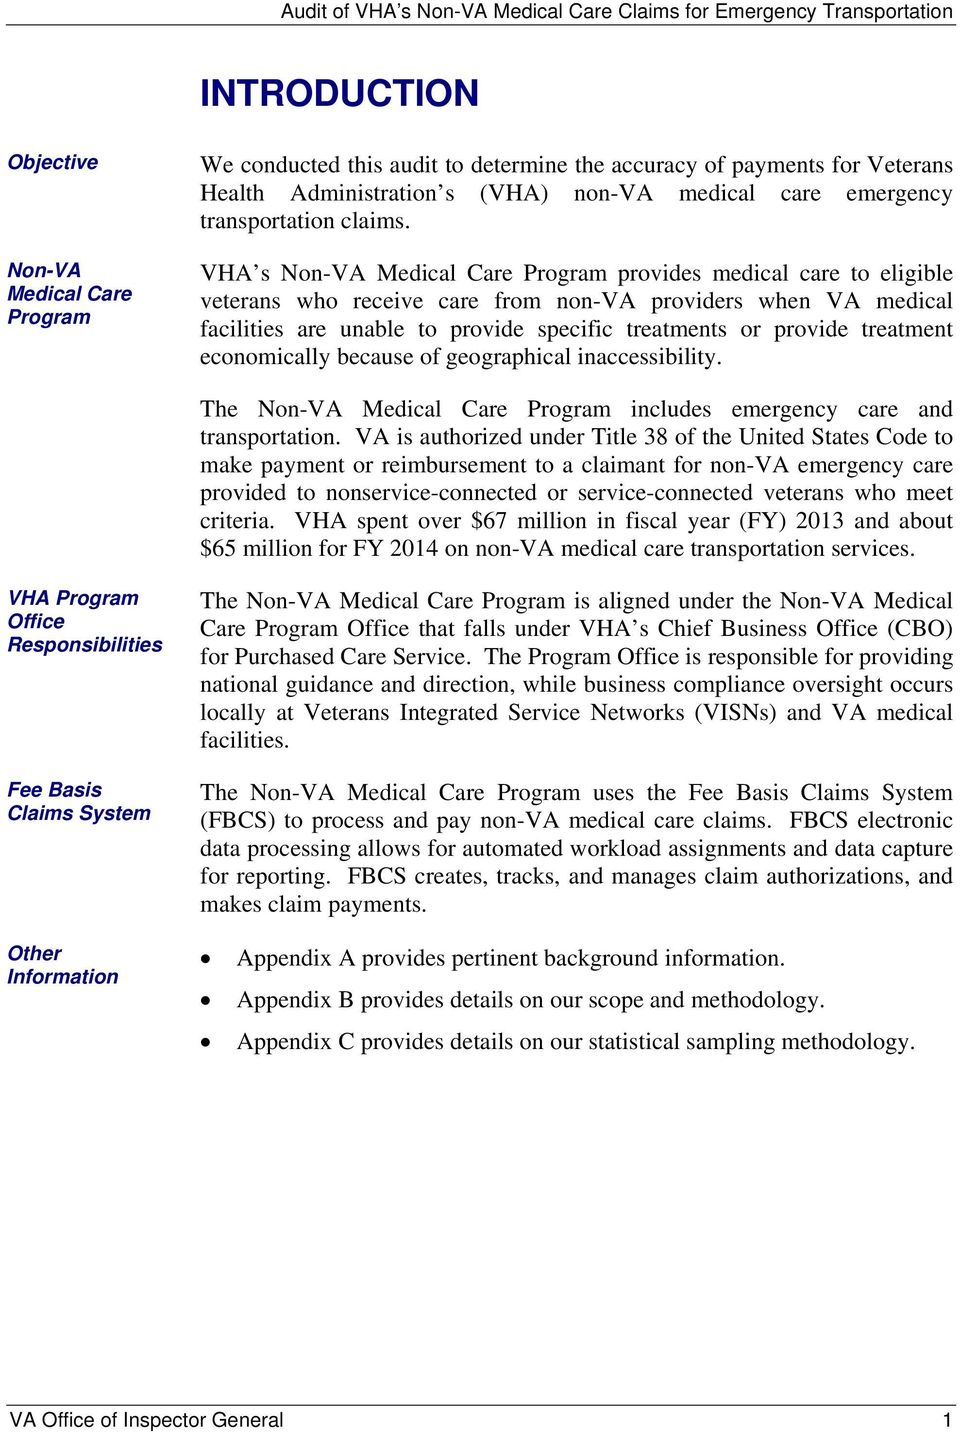 VHA s Non-VA Medical Care Program provides medical care to eligible veterans who receive care from non-va providers when VA medical facilities are unable to provide specific treatments or provide